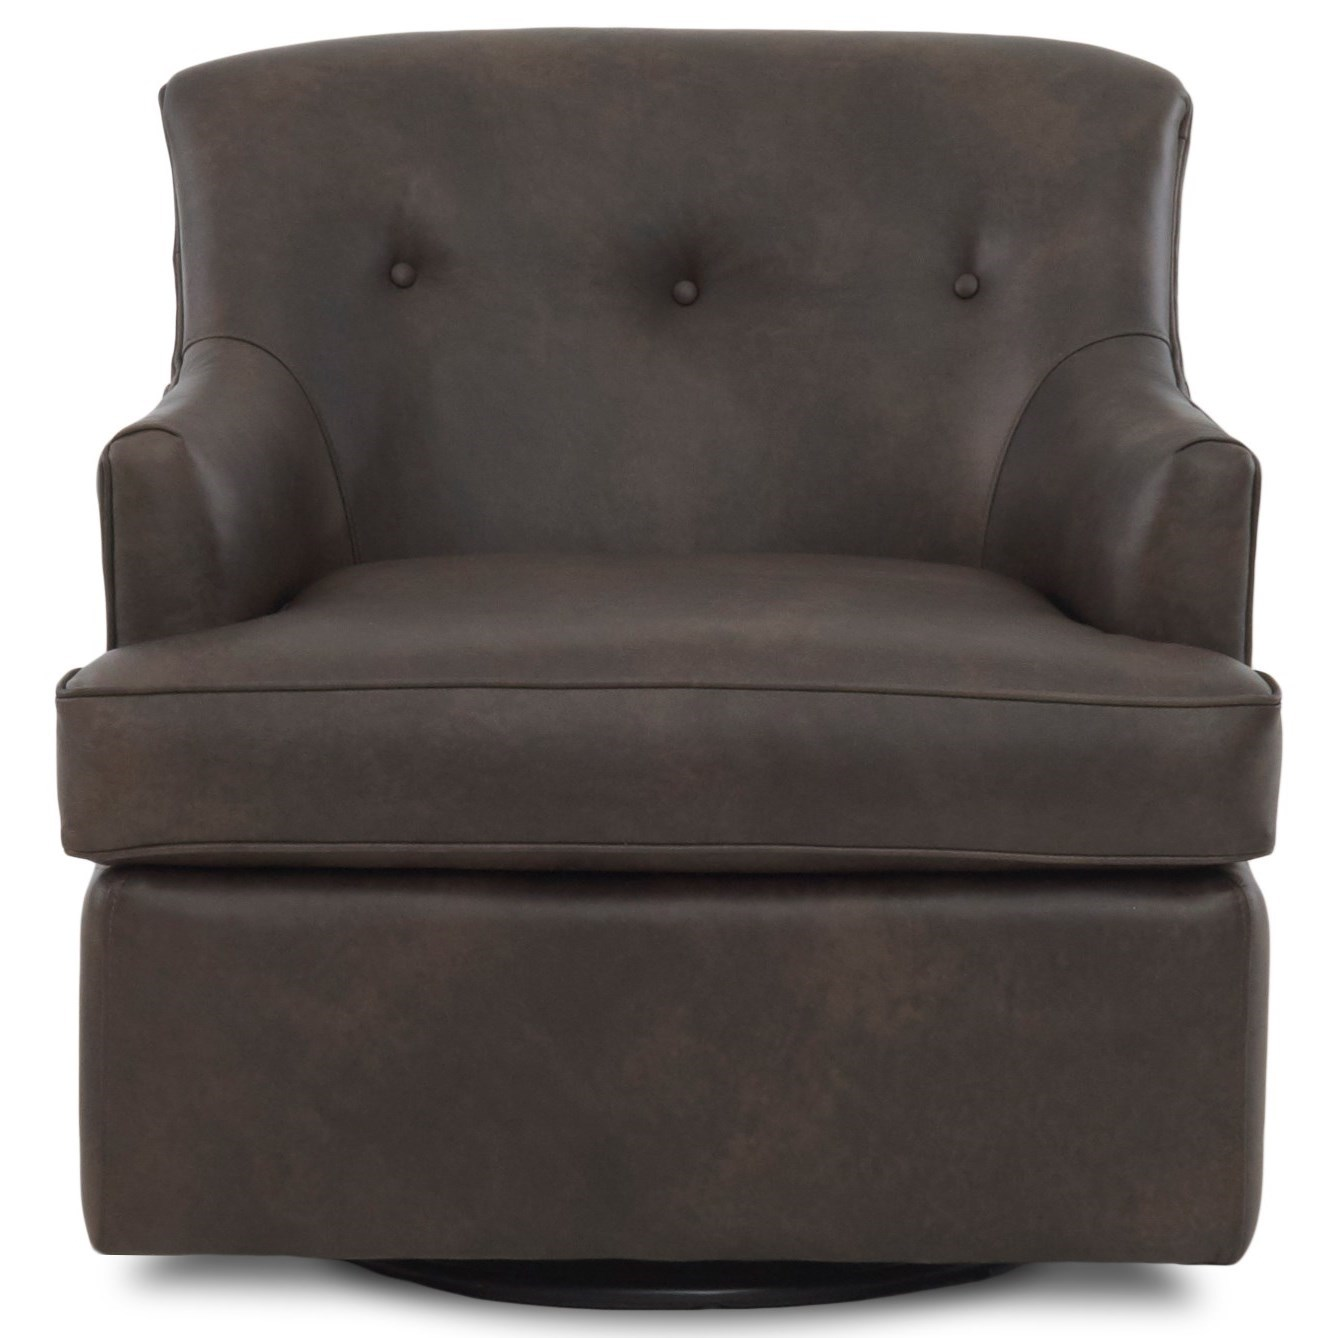 Elizabeth Swivel Glider Chair by Klaussner at Northeast Factory Direct